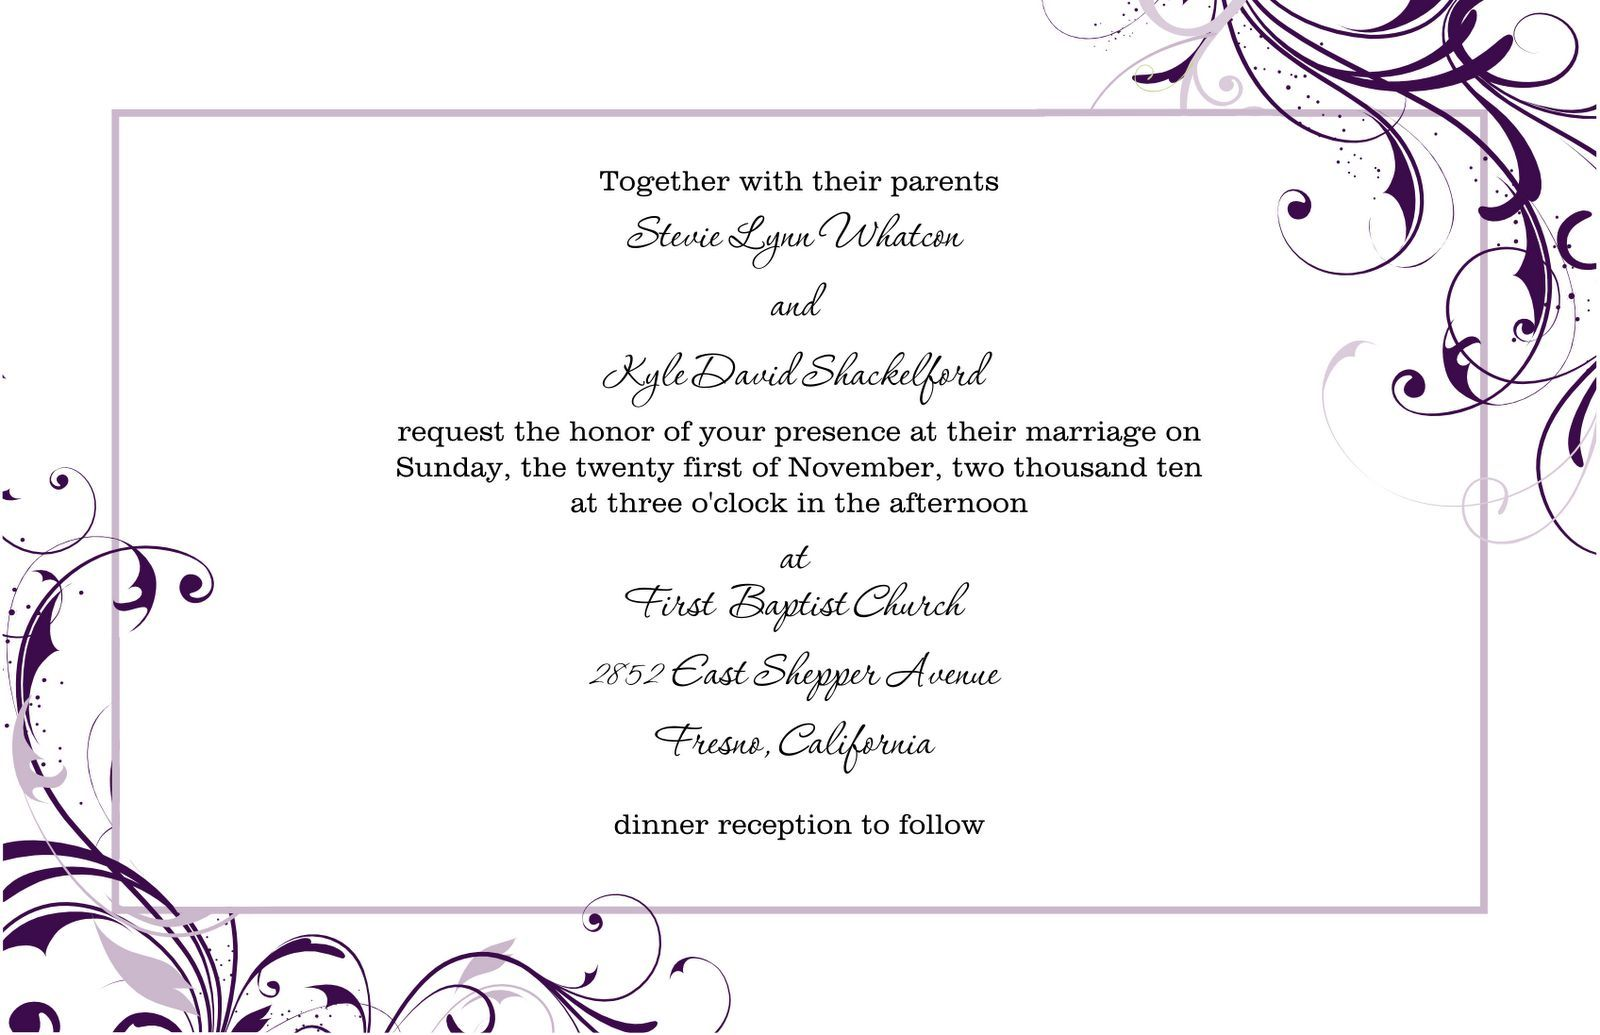 Free Microsoft Word Wedding Invitation Templates Free Wedding Invitation Templates Blank Wedding Invitation Templates Free Wedding Invitations